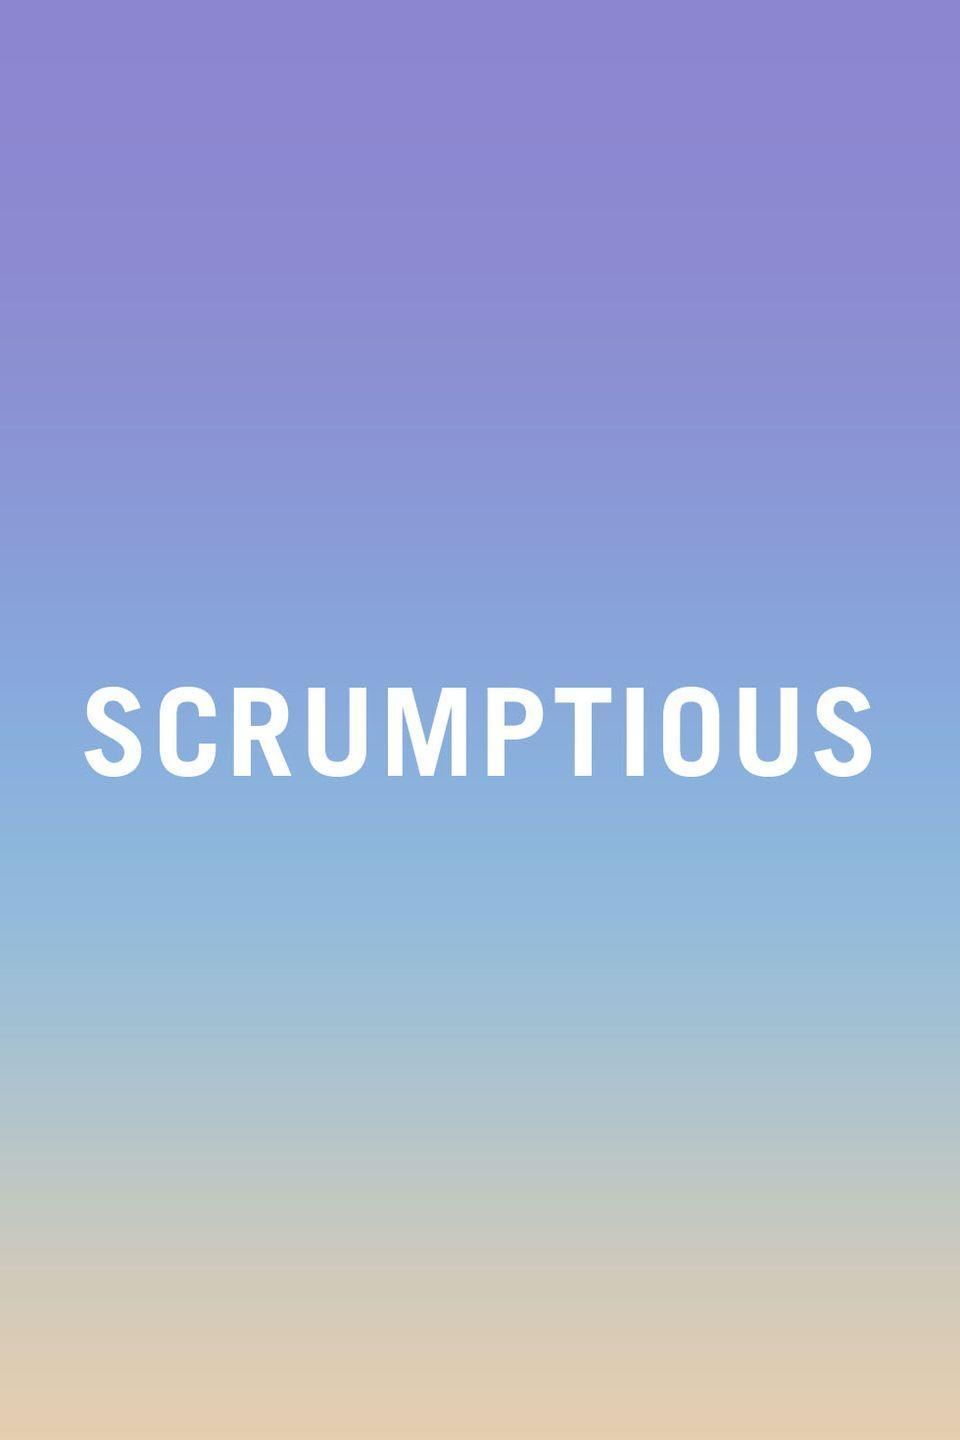 """<p>Who <em>actually</em><span class=""""redactor-invisible-space""""> says scrumptious out loud? By saying 'scrumptious', you just sound like someone who has no hobbies and no Internet, and also like someone who has never been socialized controlling your thoughts and words.</span></p><p><span class=""""redactor-invisible-space""""><strong>RELATED: </strong><a href=""""https://www.redbookmag.com/food-recipes/g4091/decadent-dessert-recipes/"""" rel=""""nofollow noopener"""" target=""""_blank"""" data-ylk=""""slk:20 Desserts That Might Actually Be Better Than Sex"""" class=""""link rapid-noclick-resp""""><strong>20 Desserts That Might Actually Be Better Than Sex</strong></a></span></p>"""